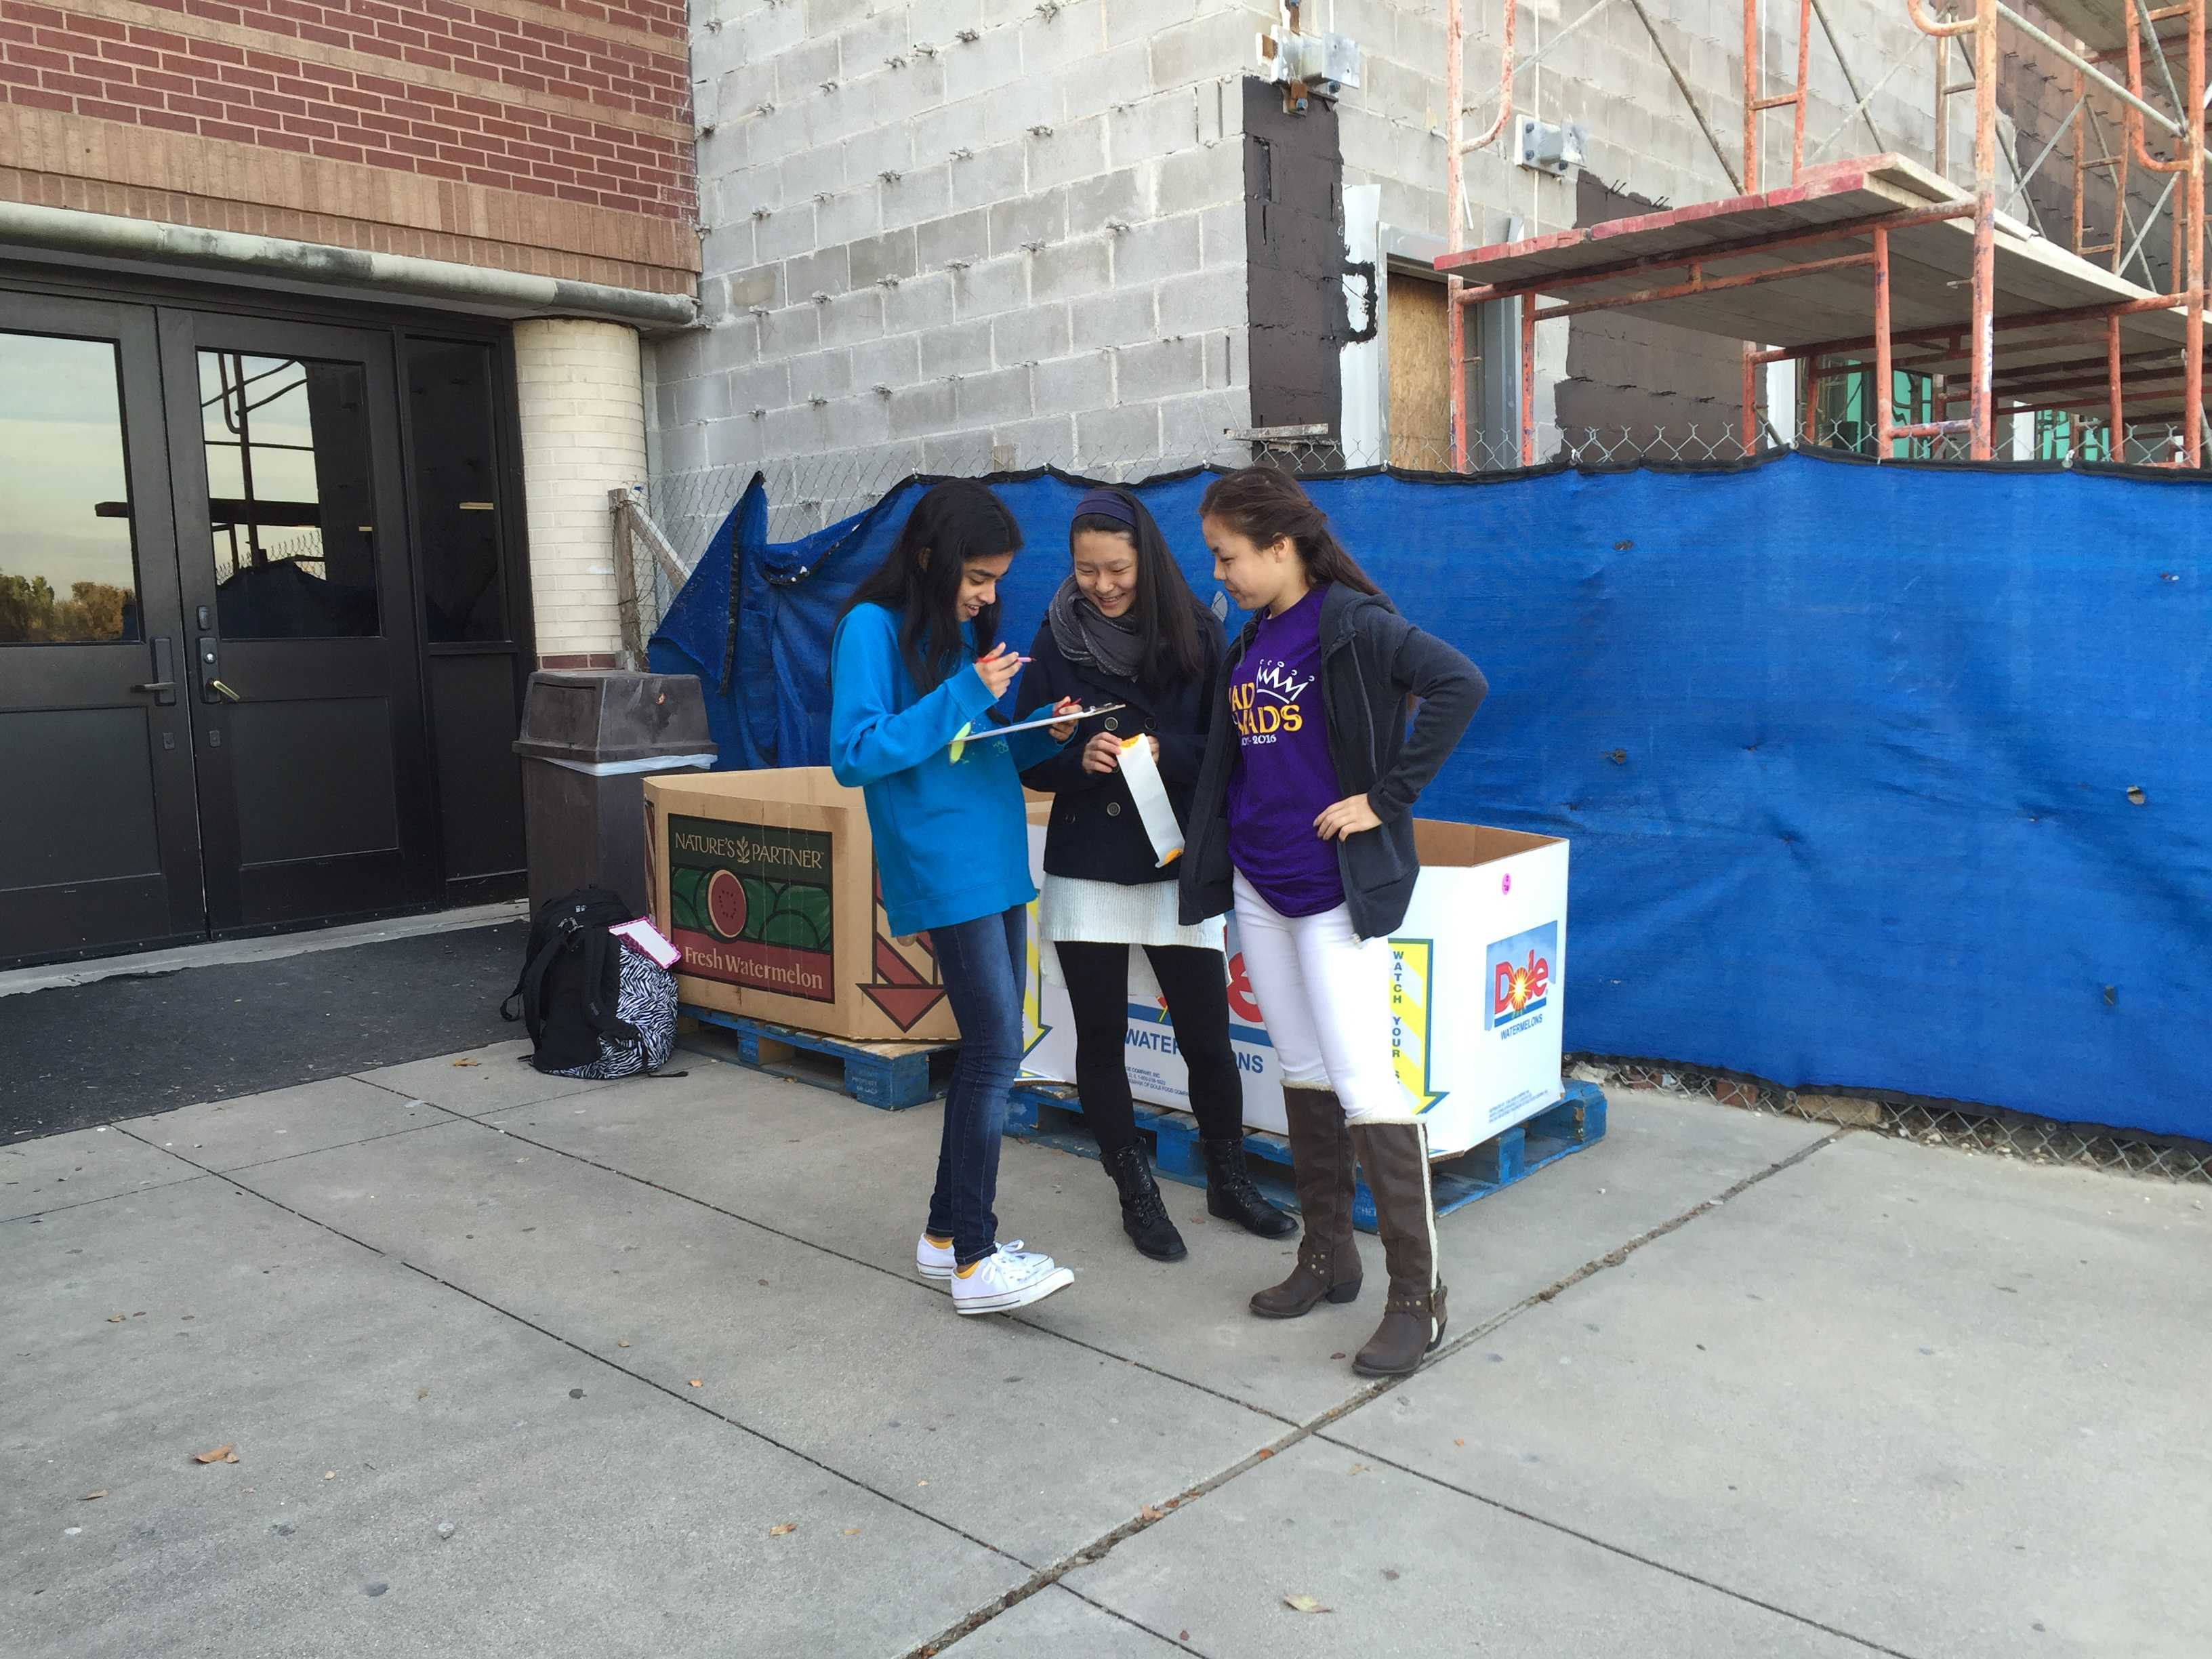 CHS sophomores and Student Council members, Riya Mahesh, Sol Hong, and Jasmine Lau, help out with the annual turkey drive on Nov. 20. Students and parents were able to donate turkeys and chickens to the North Texas Food Bank.